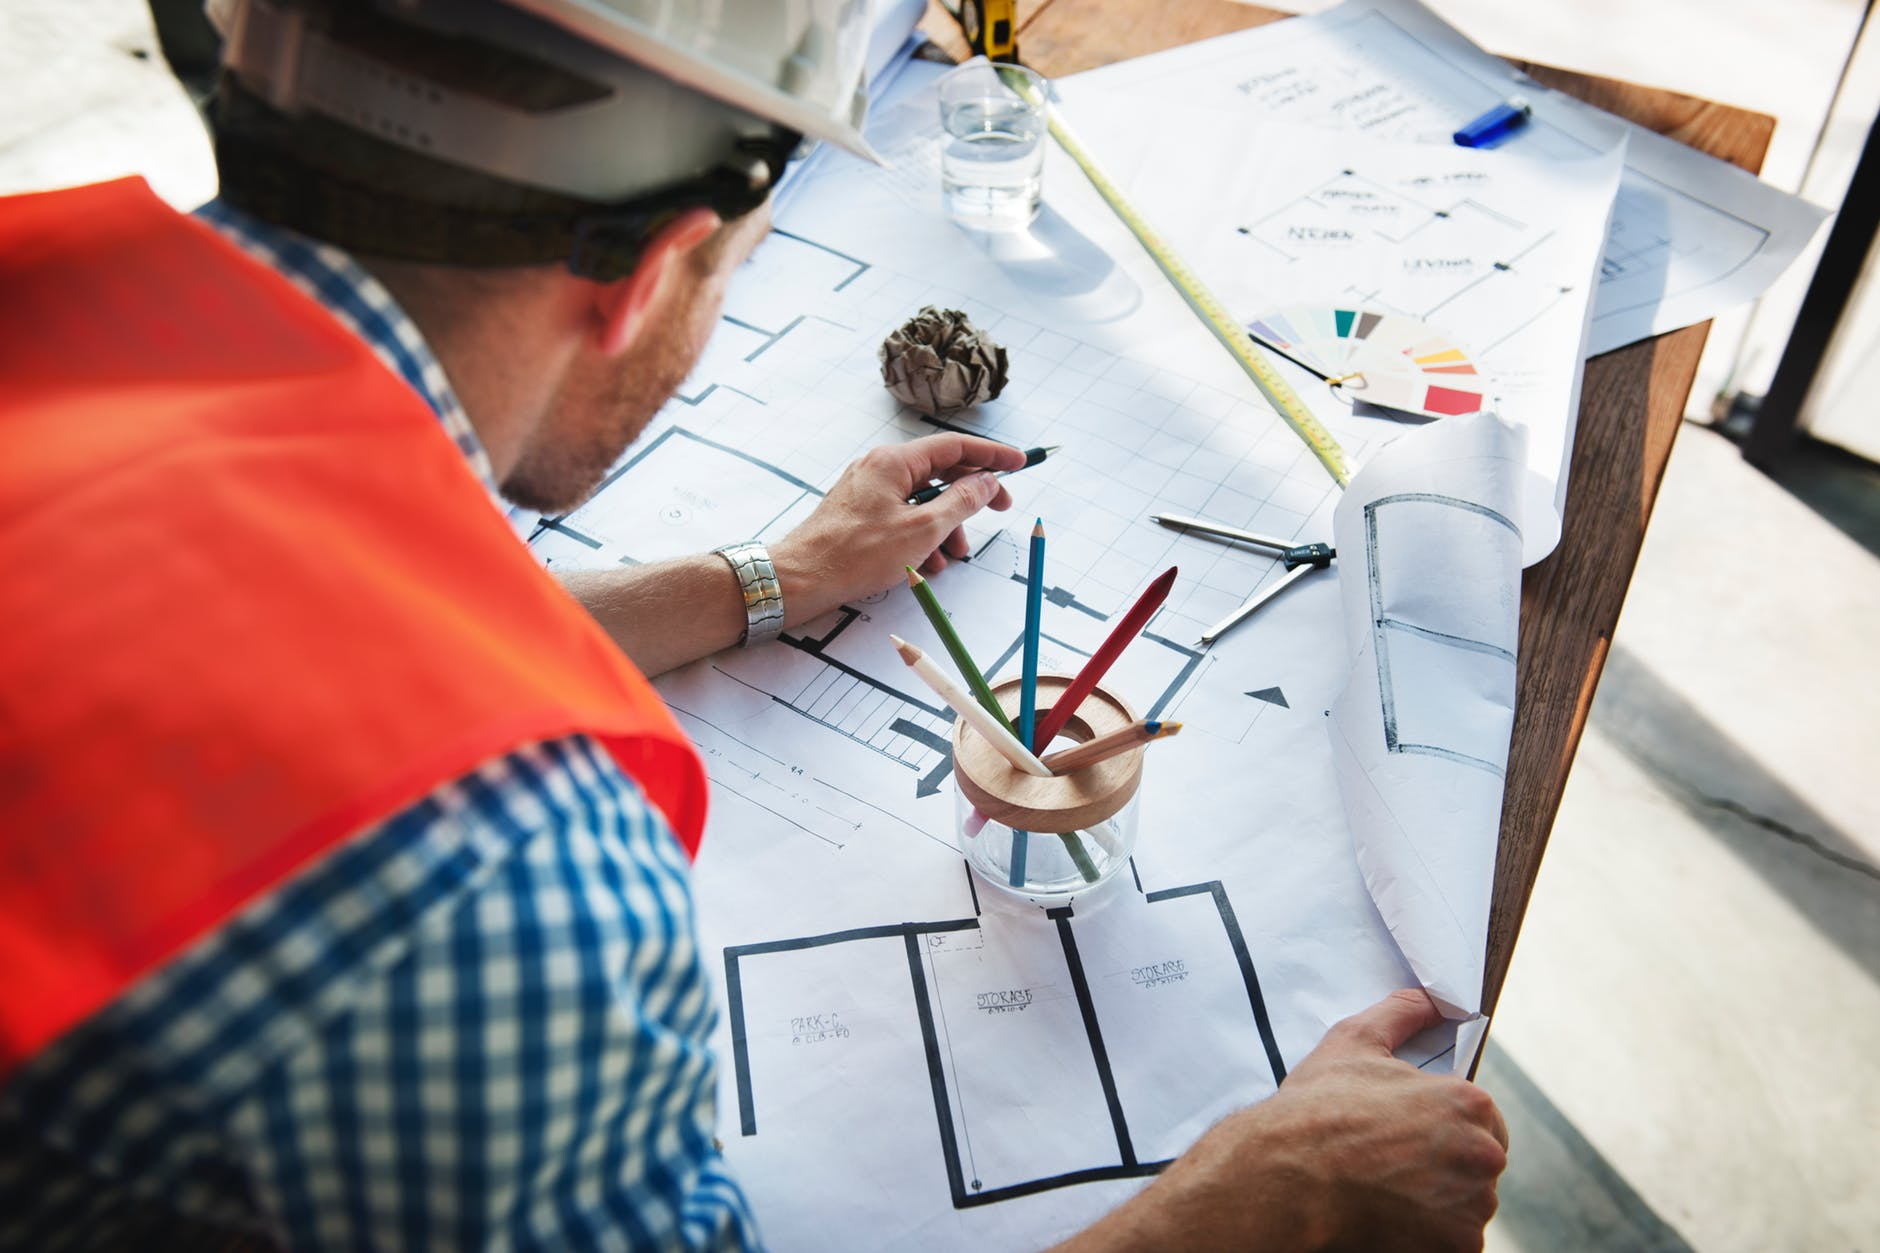 man wearing white hard hat leaning on table with sketch plans